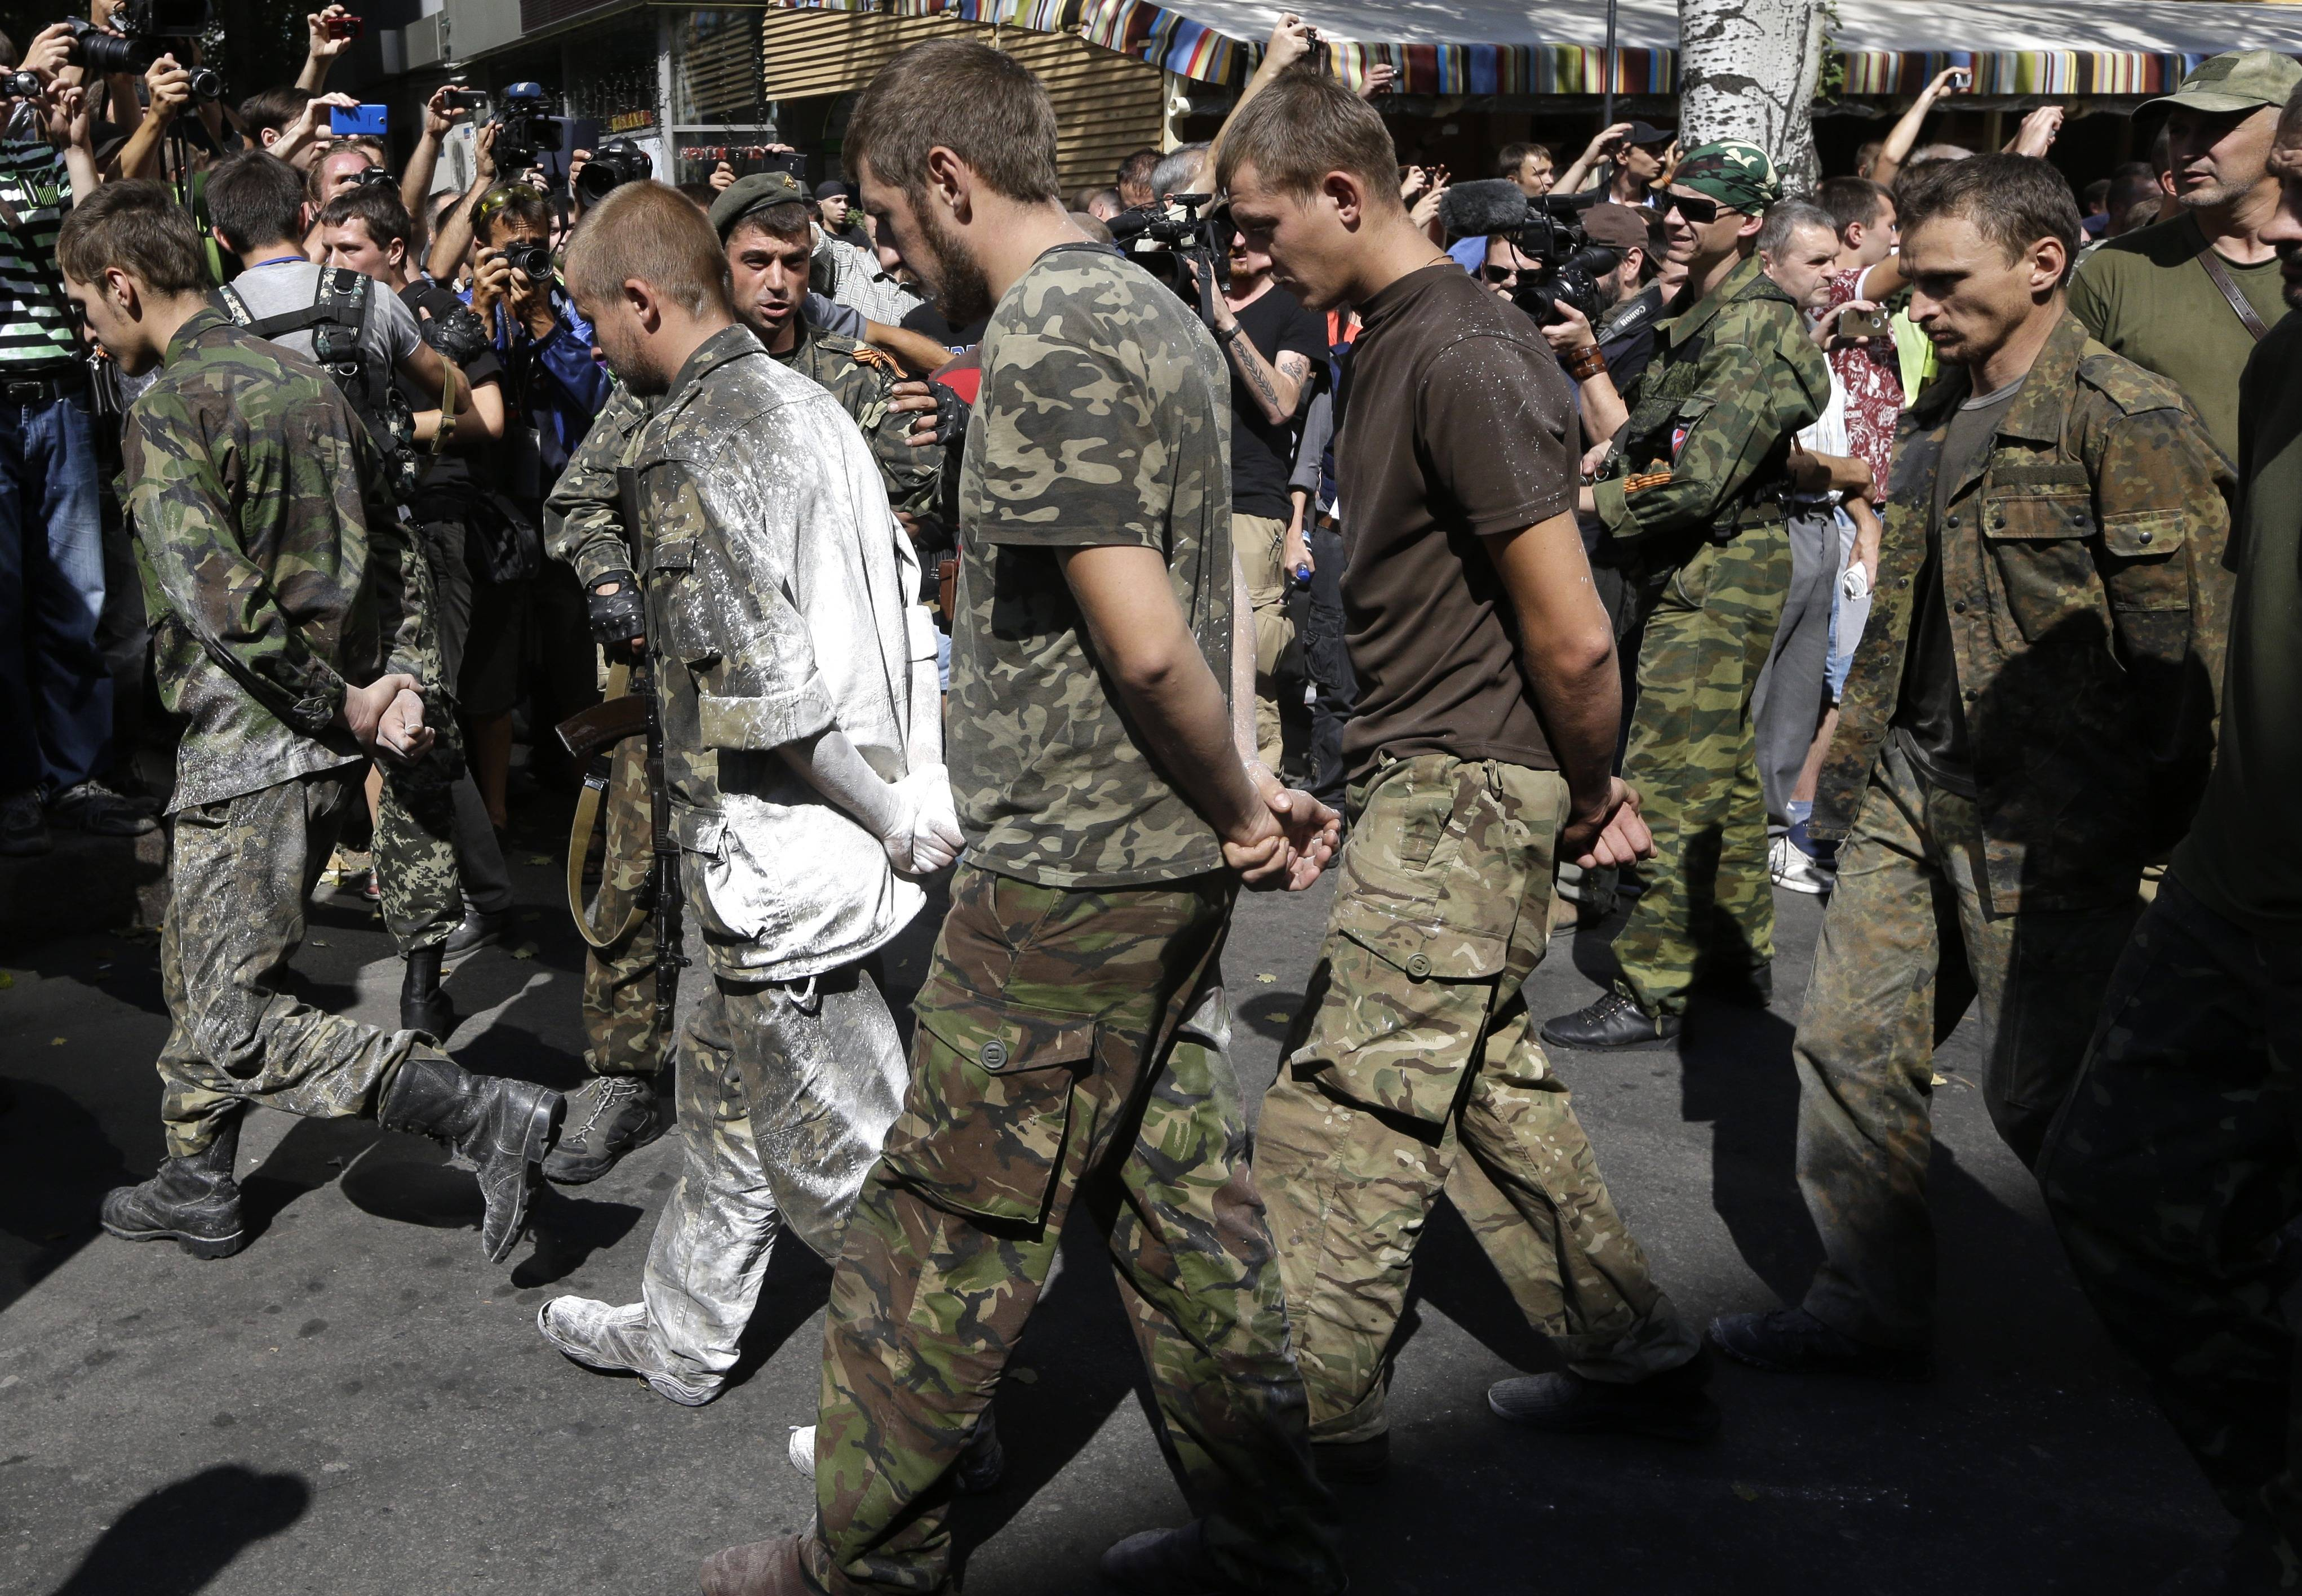 Pro-Russian rebels escort prisoners of war from the Ukrainian army in a central square in Donetsk, eastern Ukraine, Sunday. Ukraine has retaken control of much of its eastern territory bordering Russia in the last few weeks, but fierce fighting for the rebel-held cities of Donetsk and Luhansk persists.